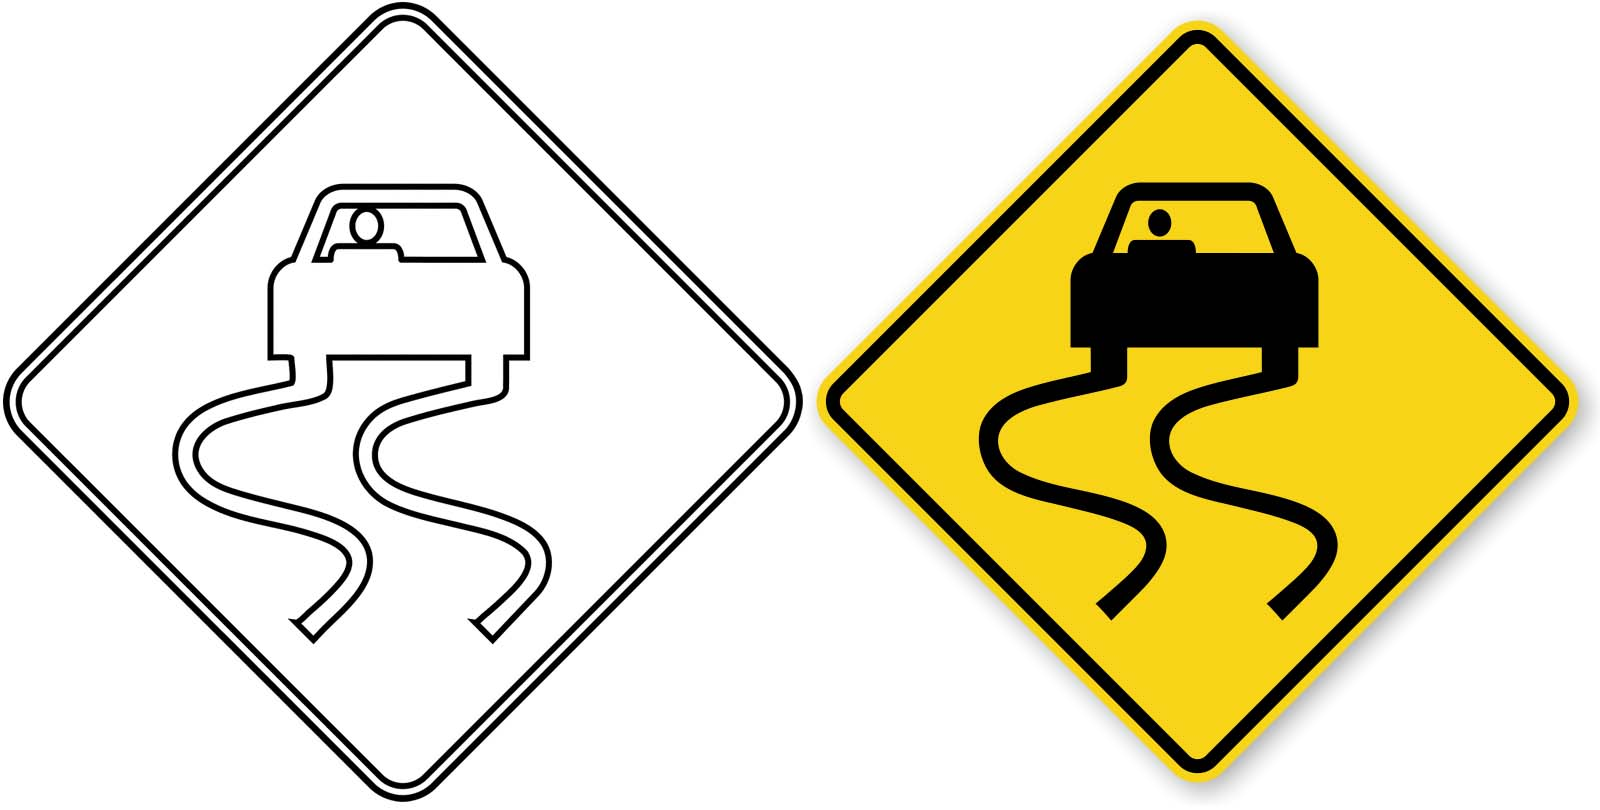 slippery road sign clipart